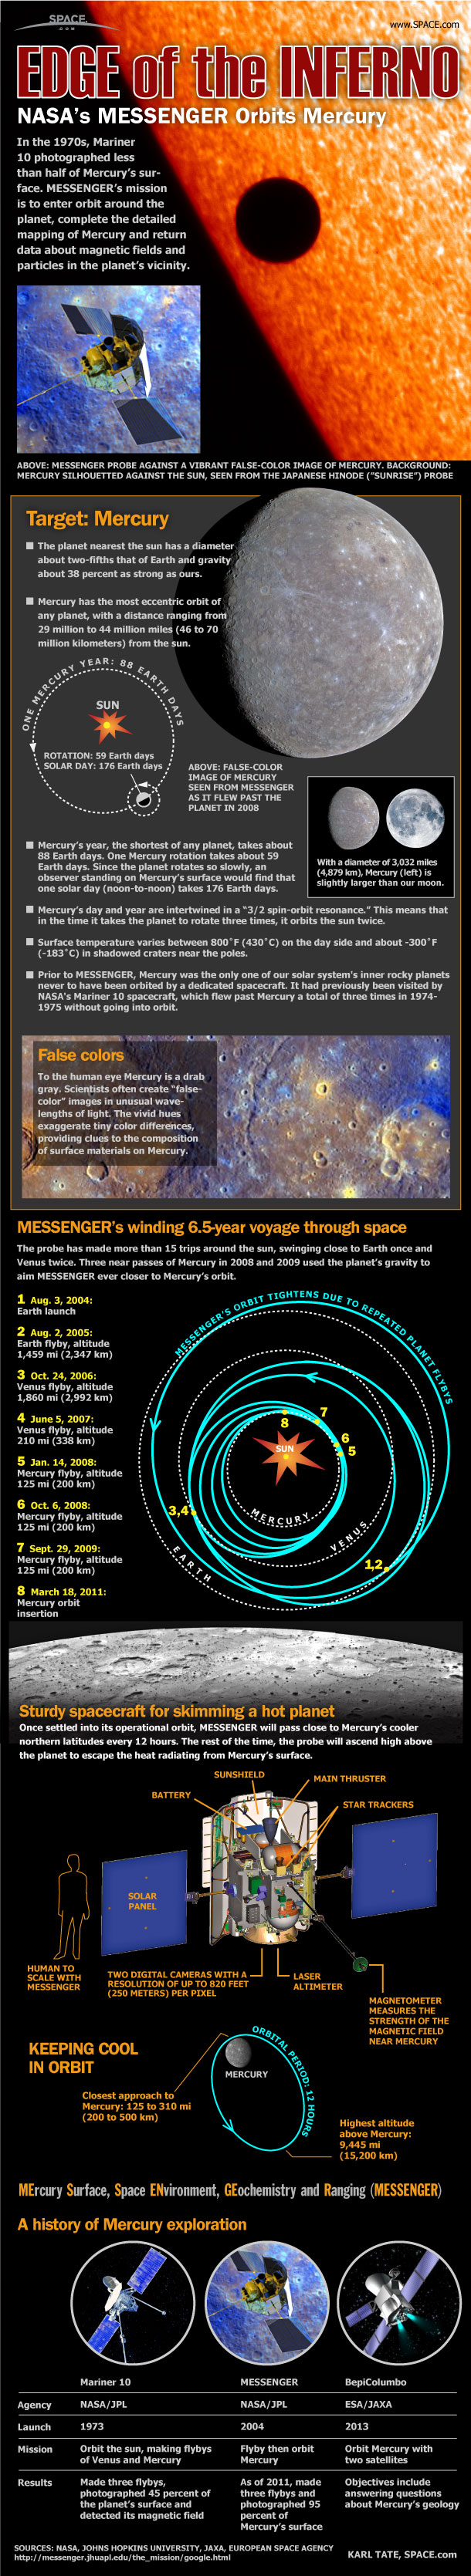 NASA's Messenger Mission to Mercury (Infographic)